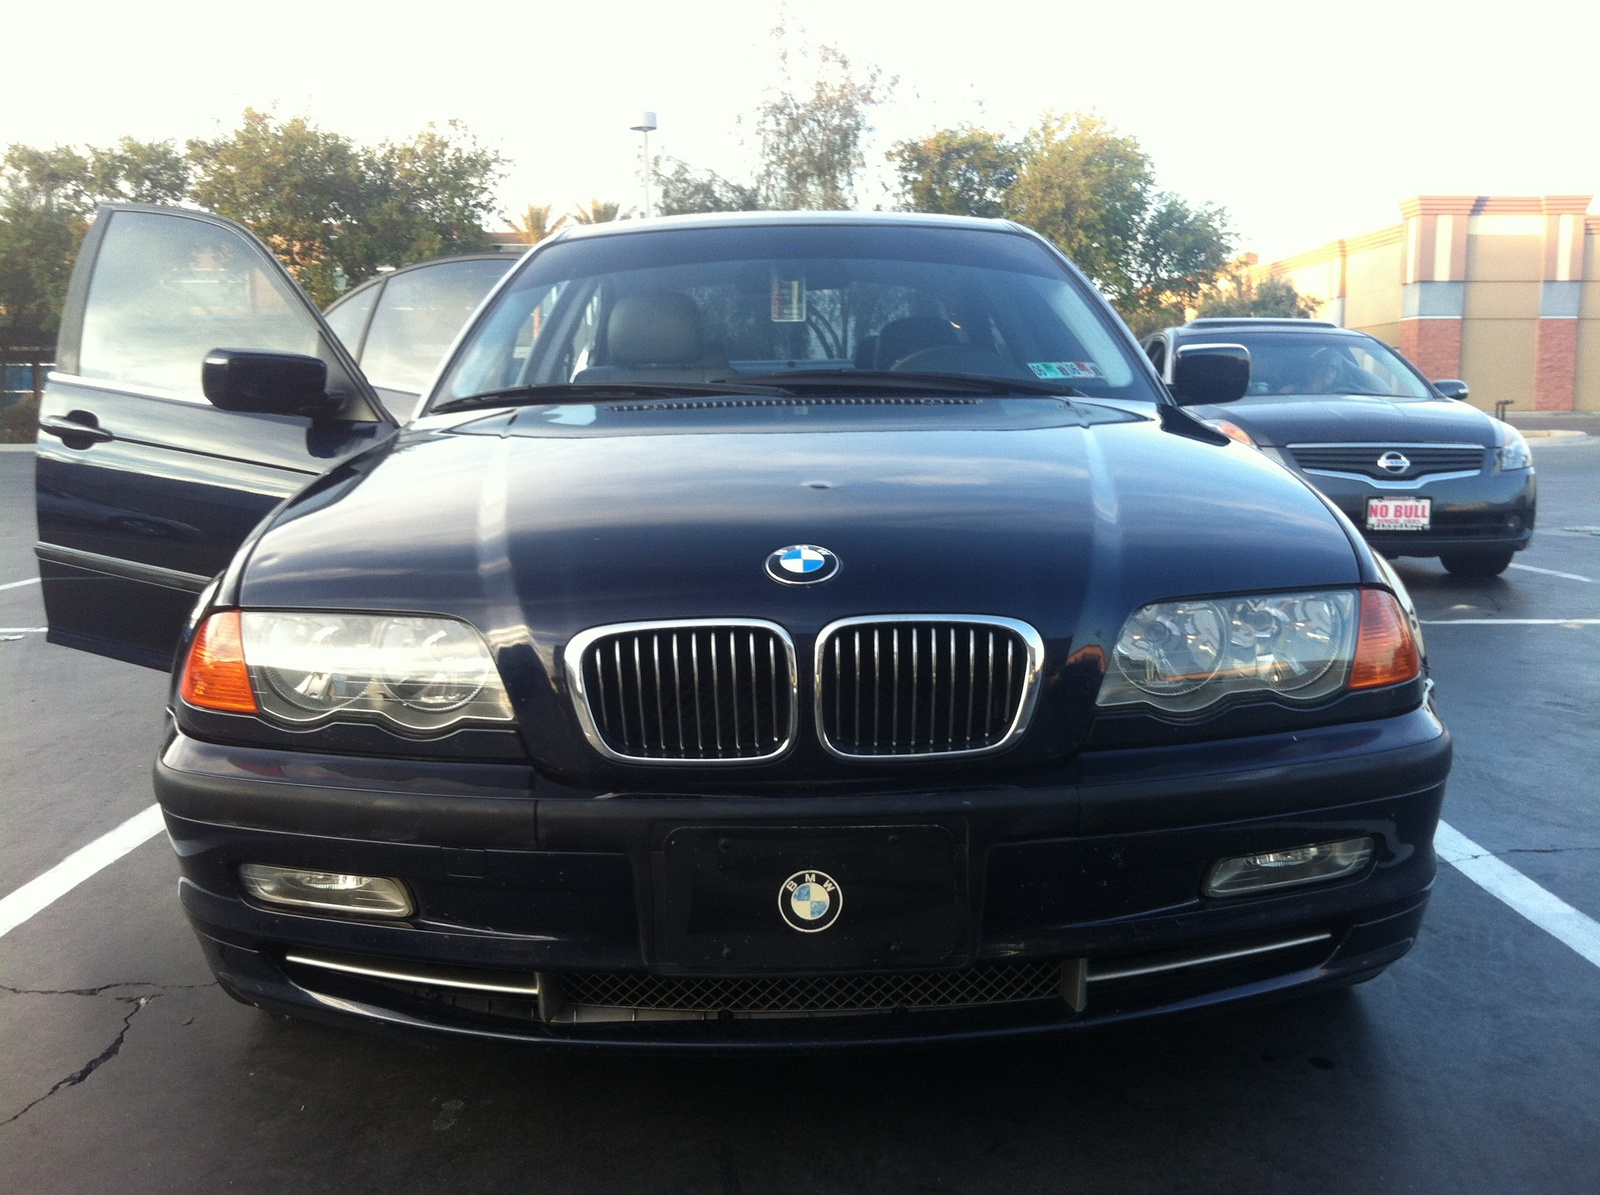 BMW 3 series 330xd 2001 photo - 10